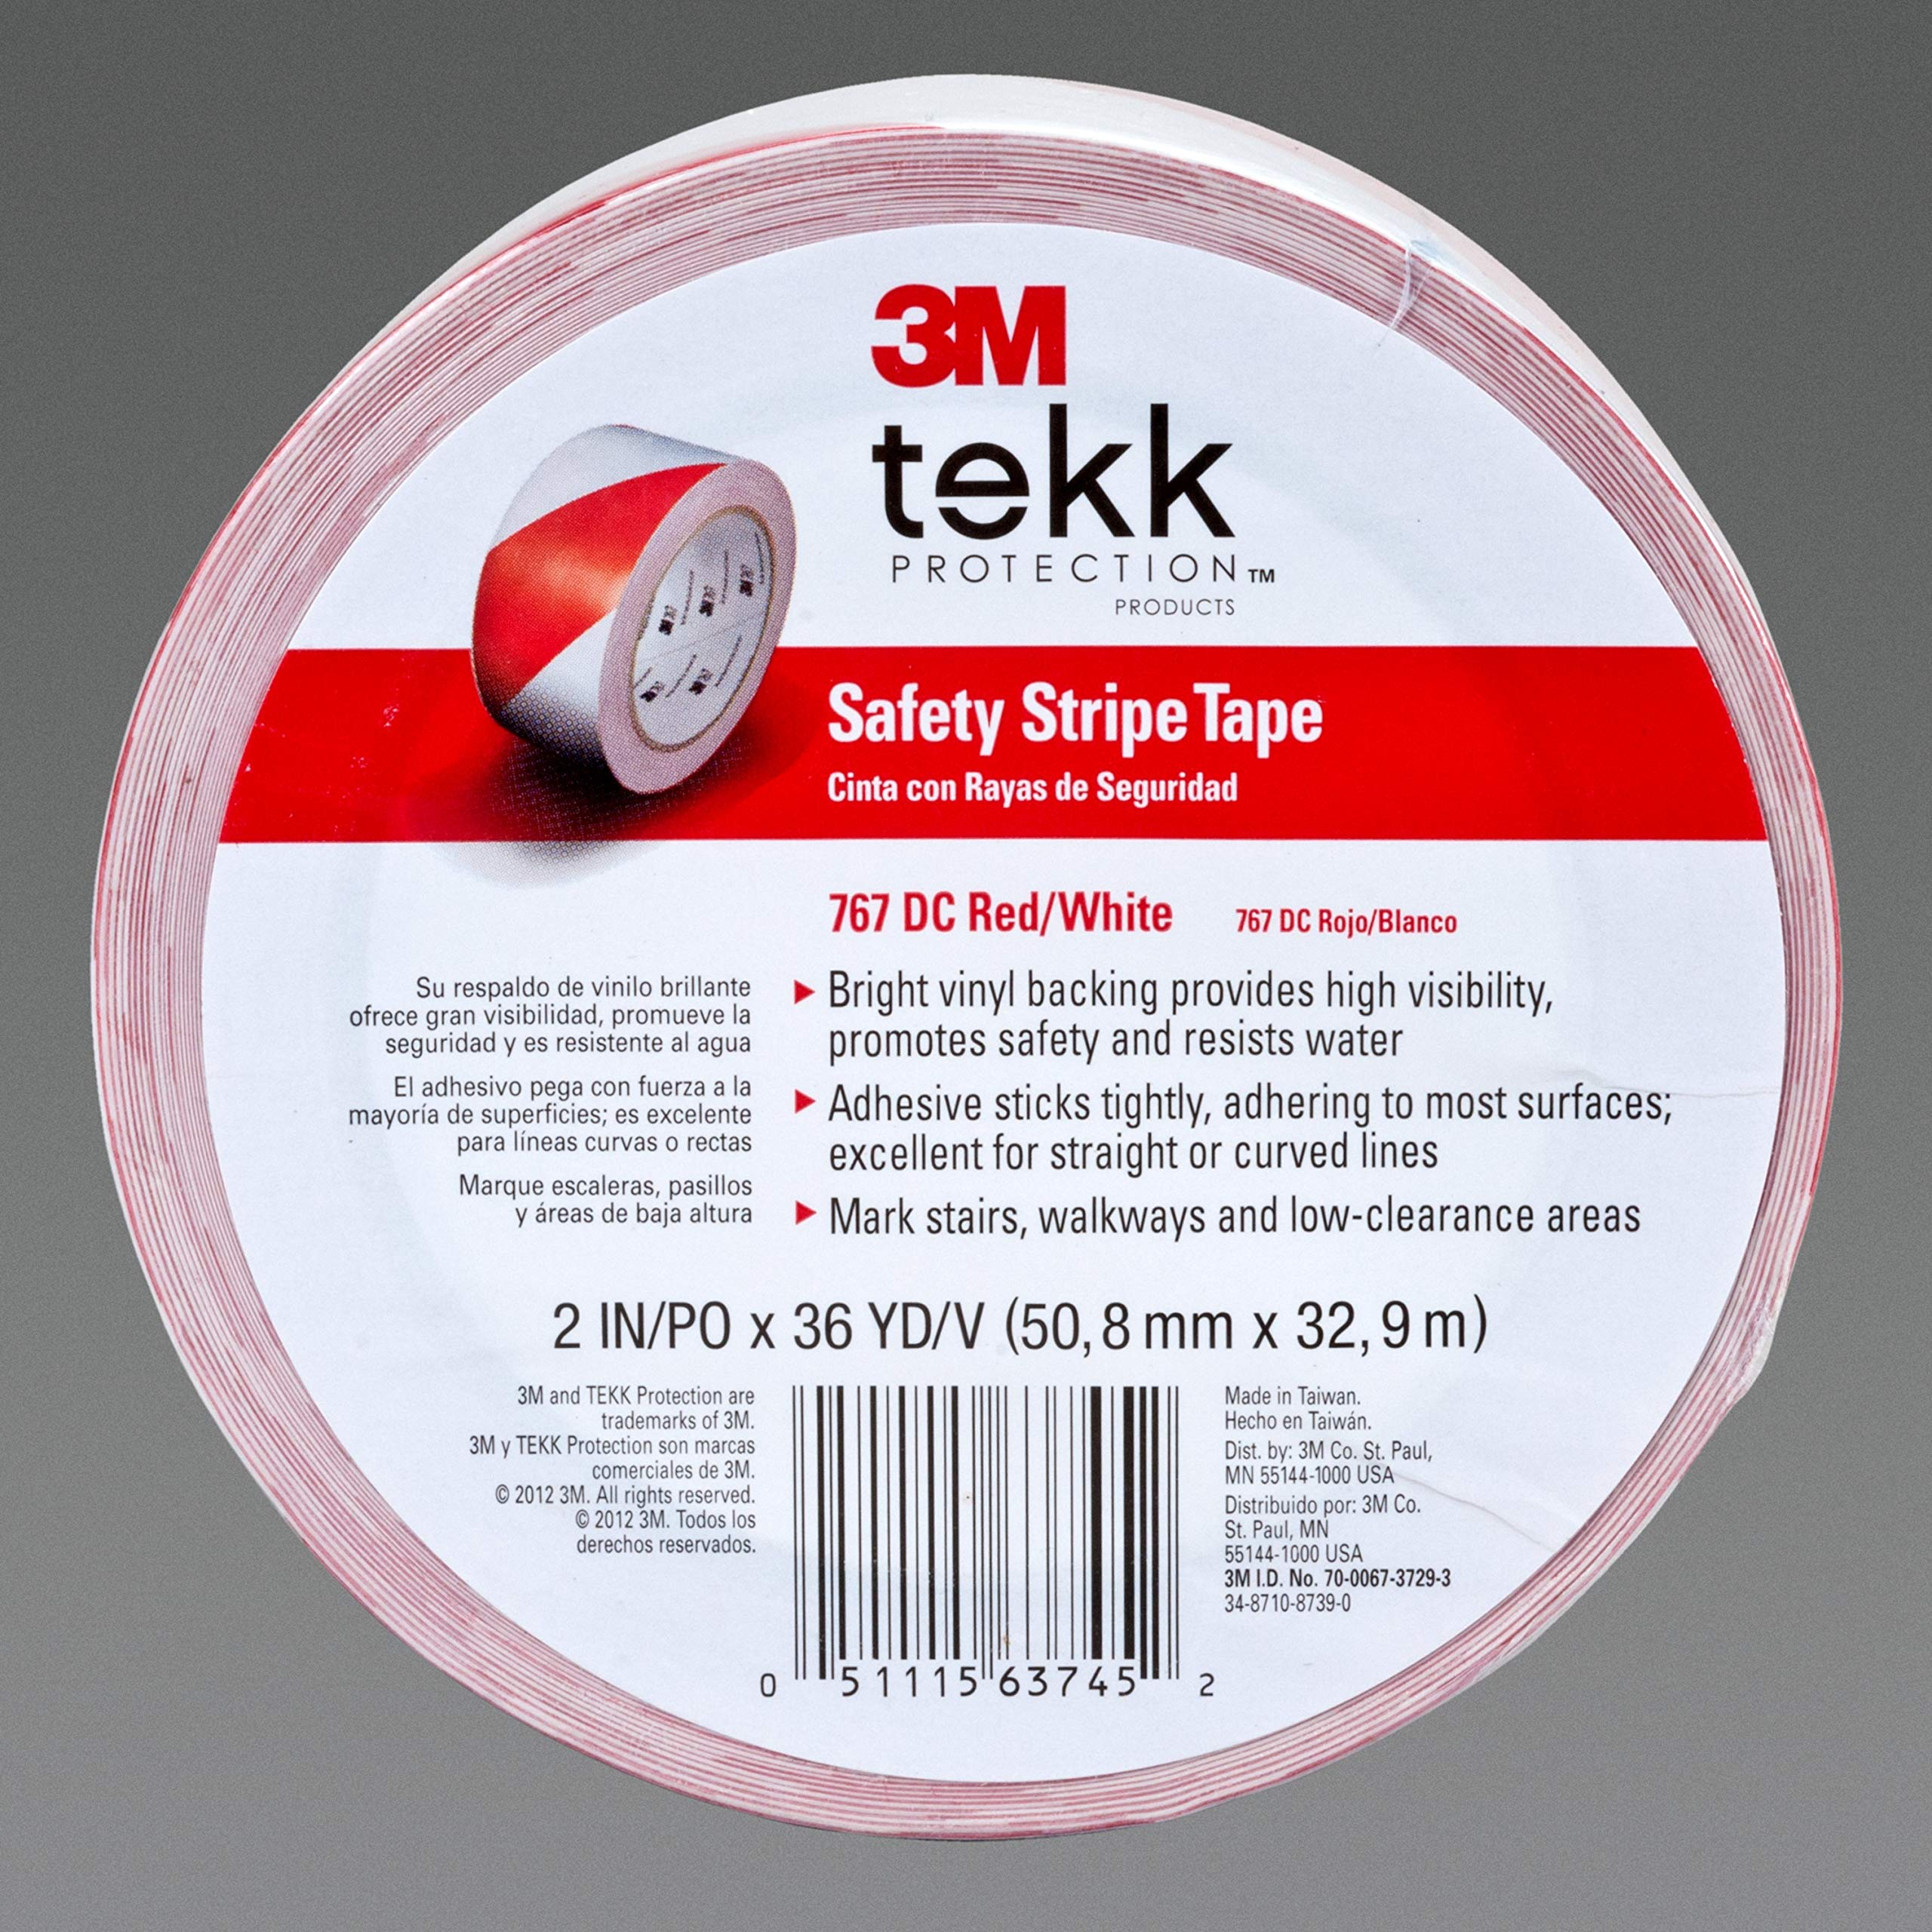 3M Safety Stripe Tape 767, DC Red/White 2 in x 36 yd, 5 mil